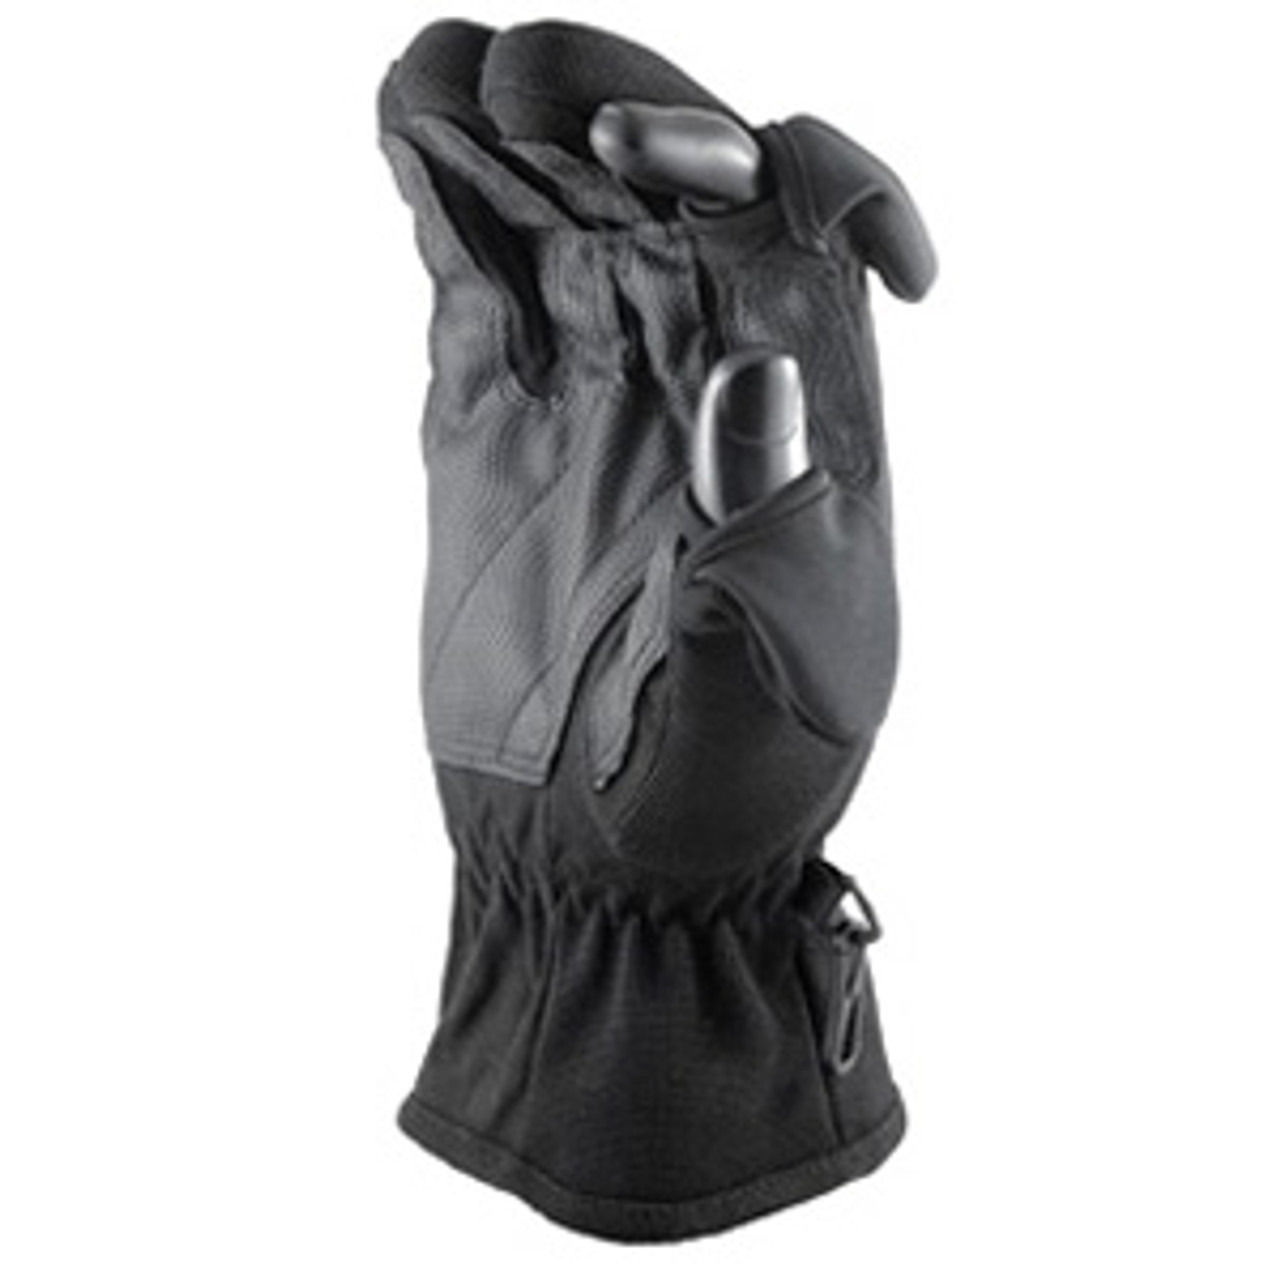 Optex Freehands Photo Gloves - Mens (Large)